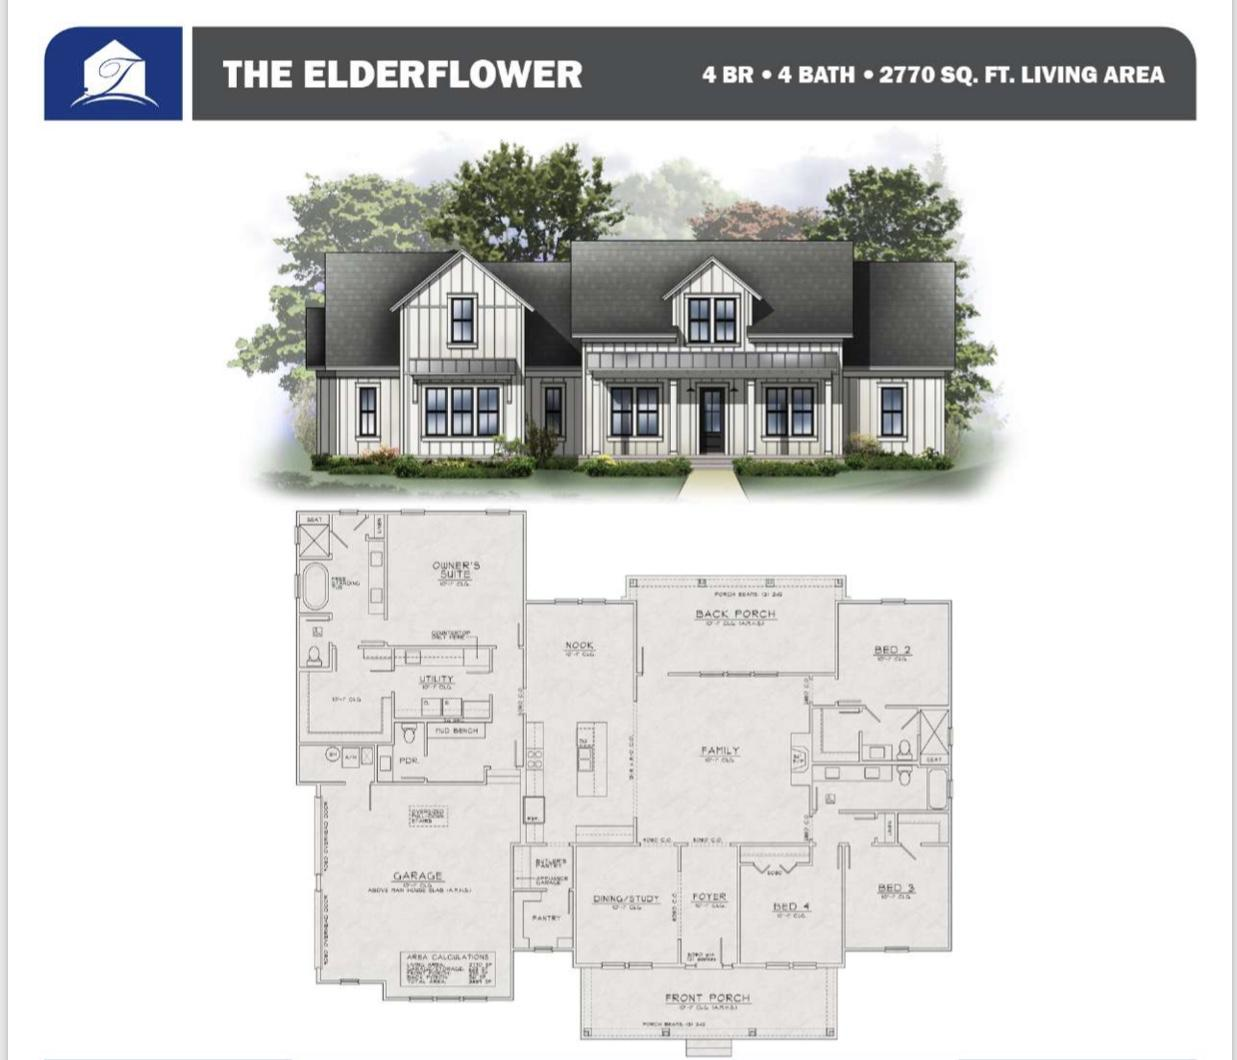 1213  Elderflower Drive, Niceville, Florida